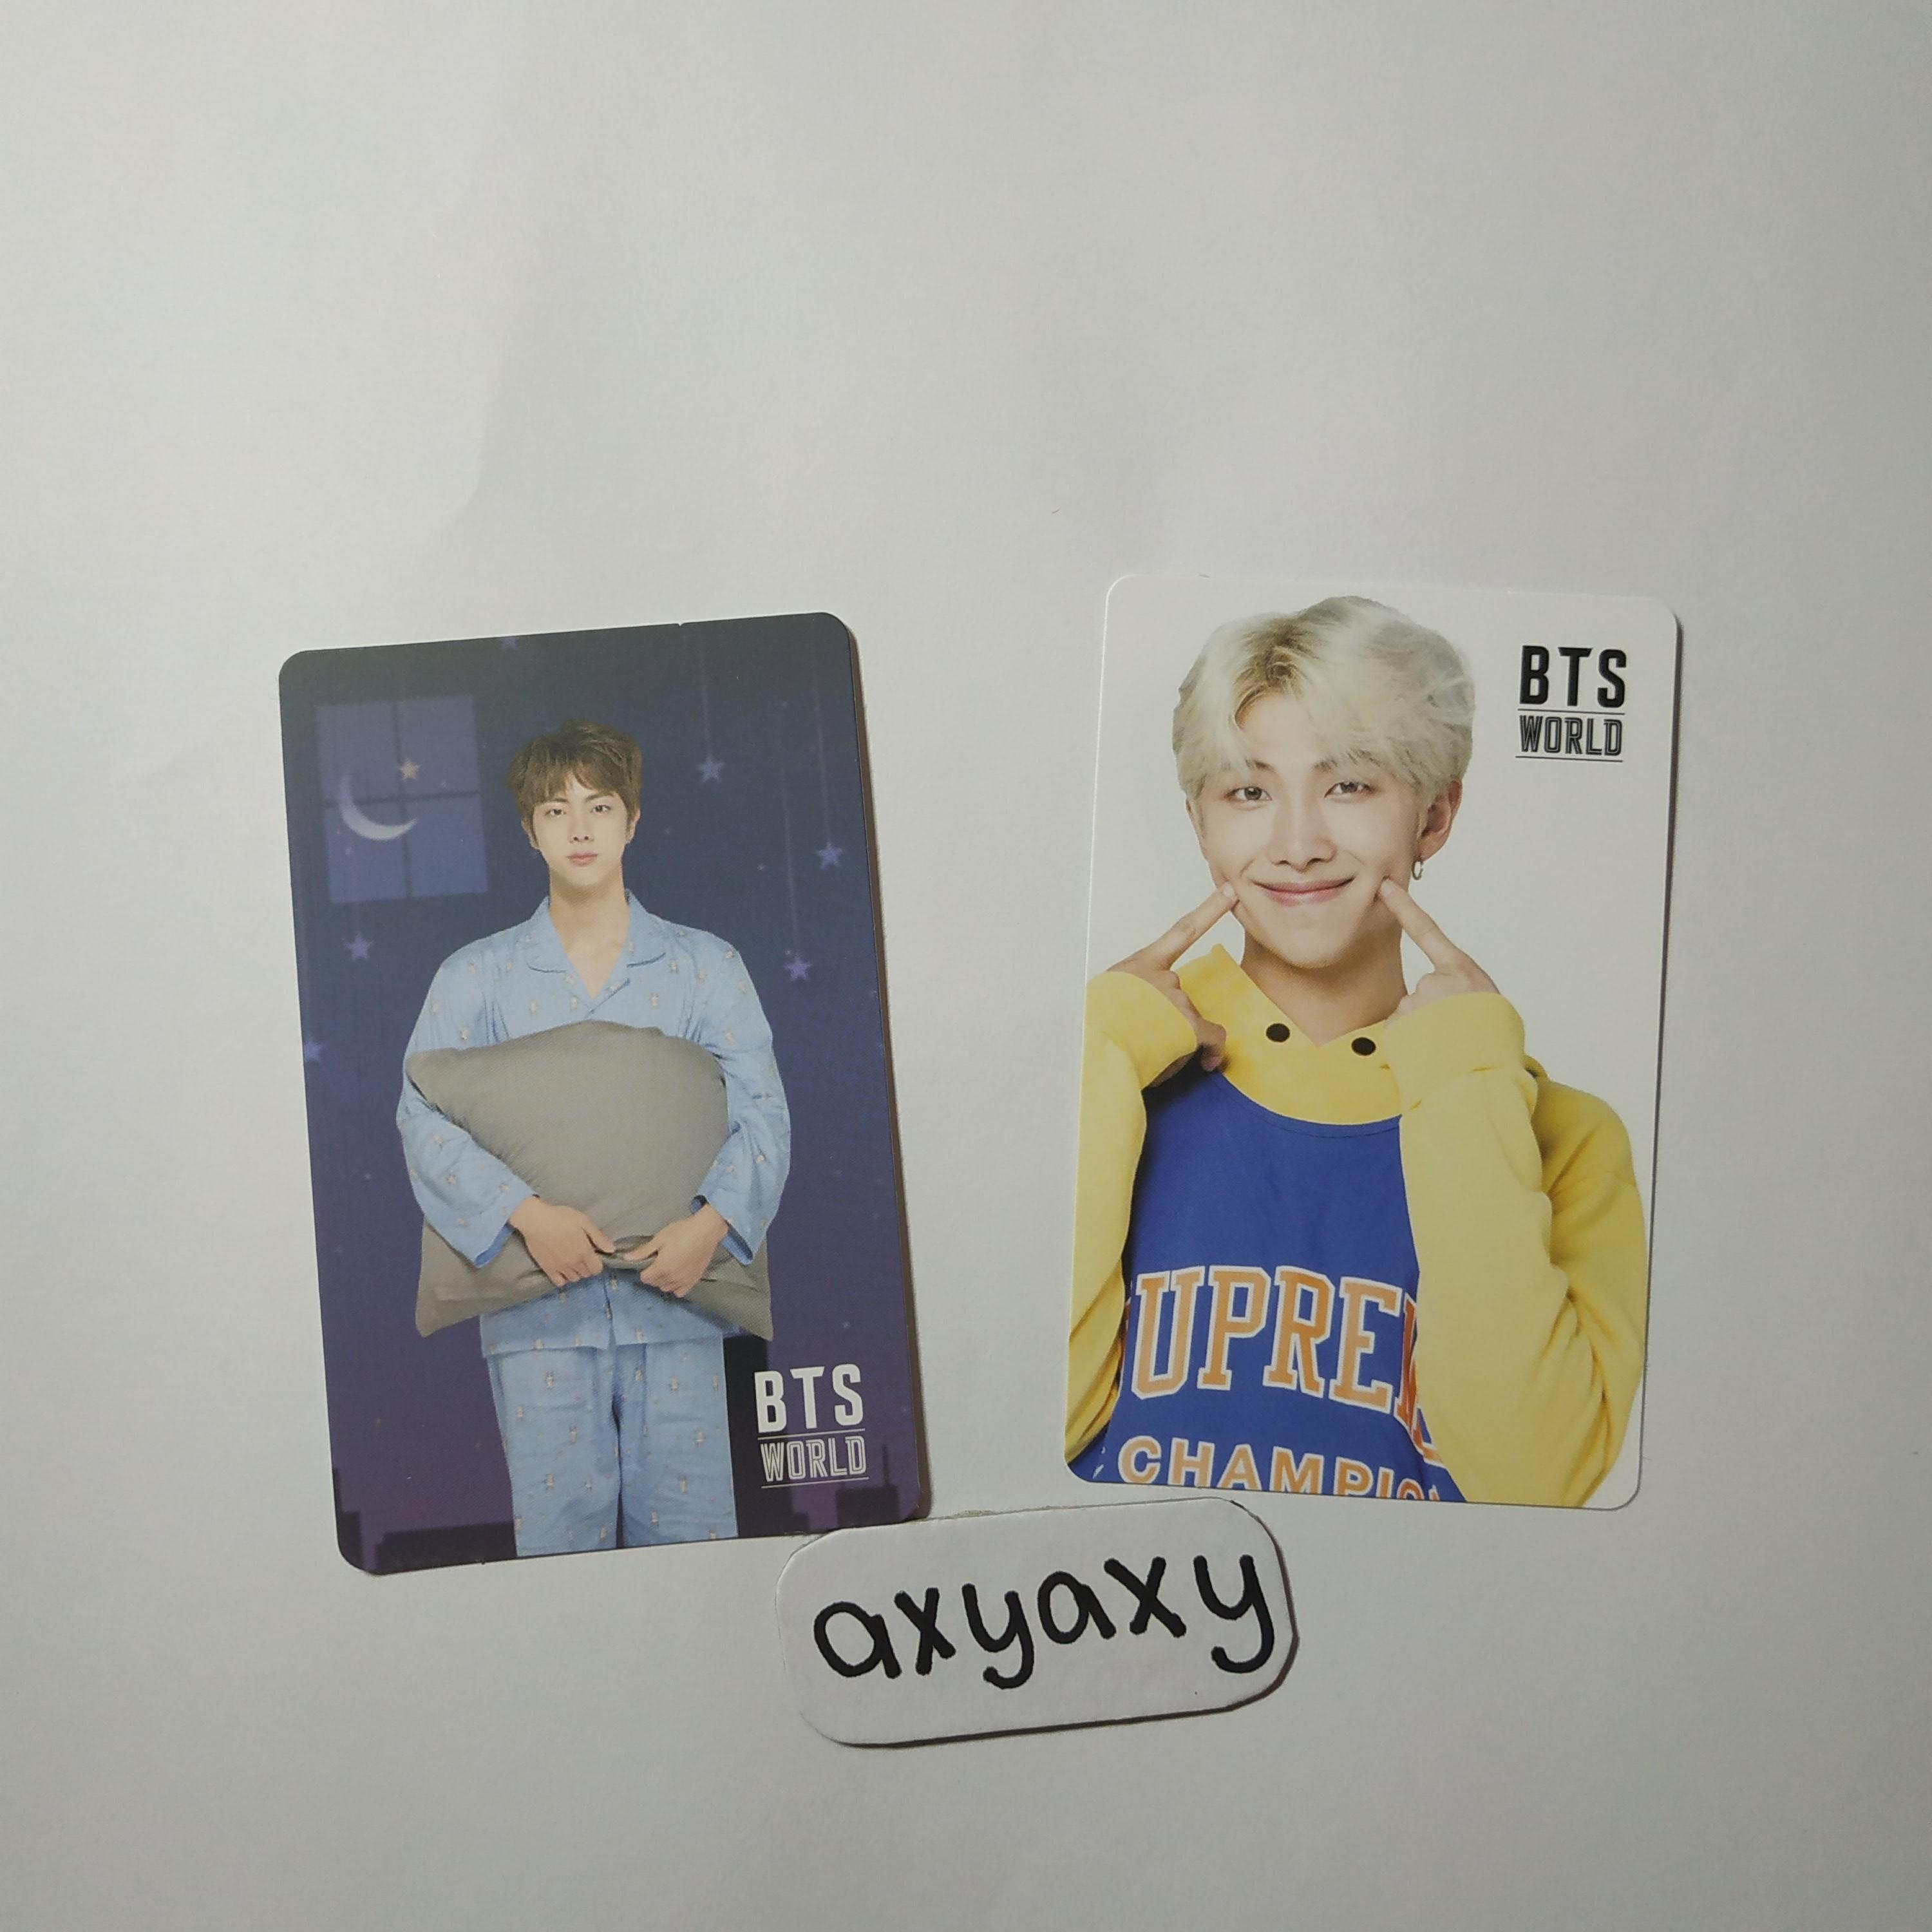 WTS] BTS OST Original Soundtrack Album Photocards on Carousell